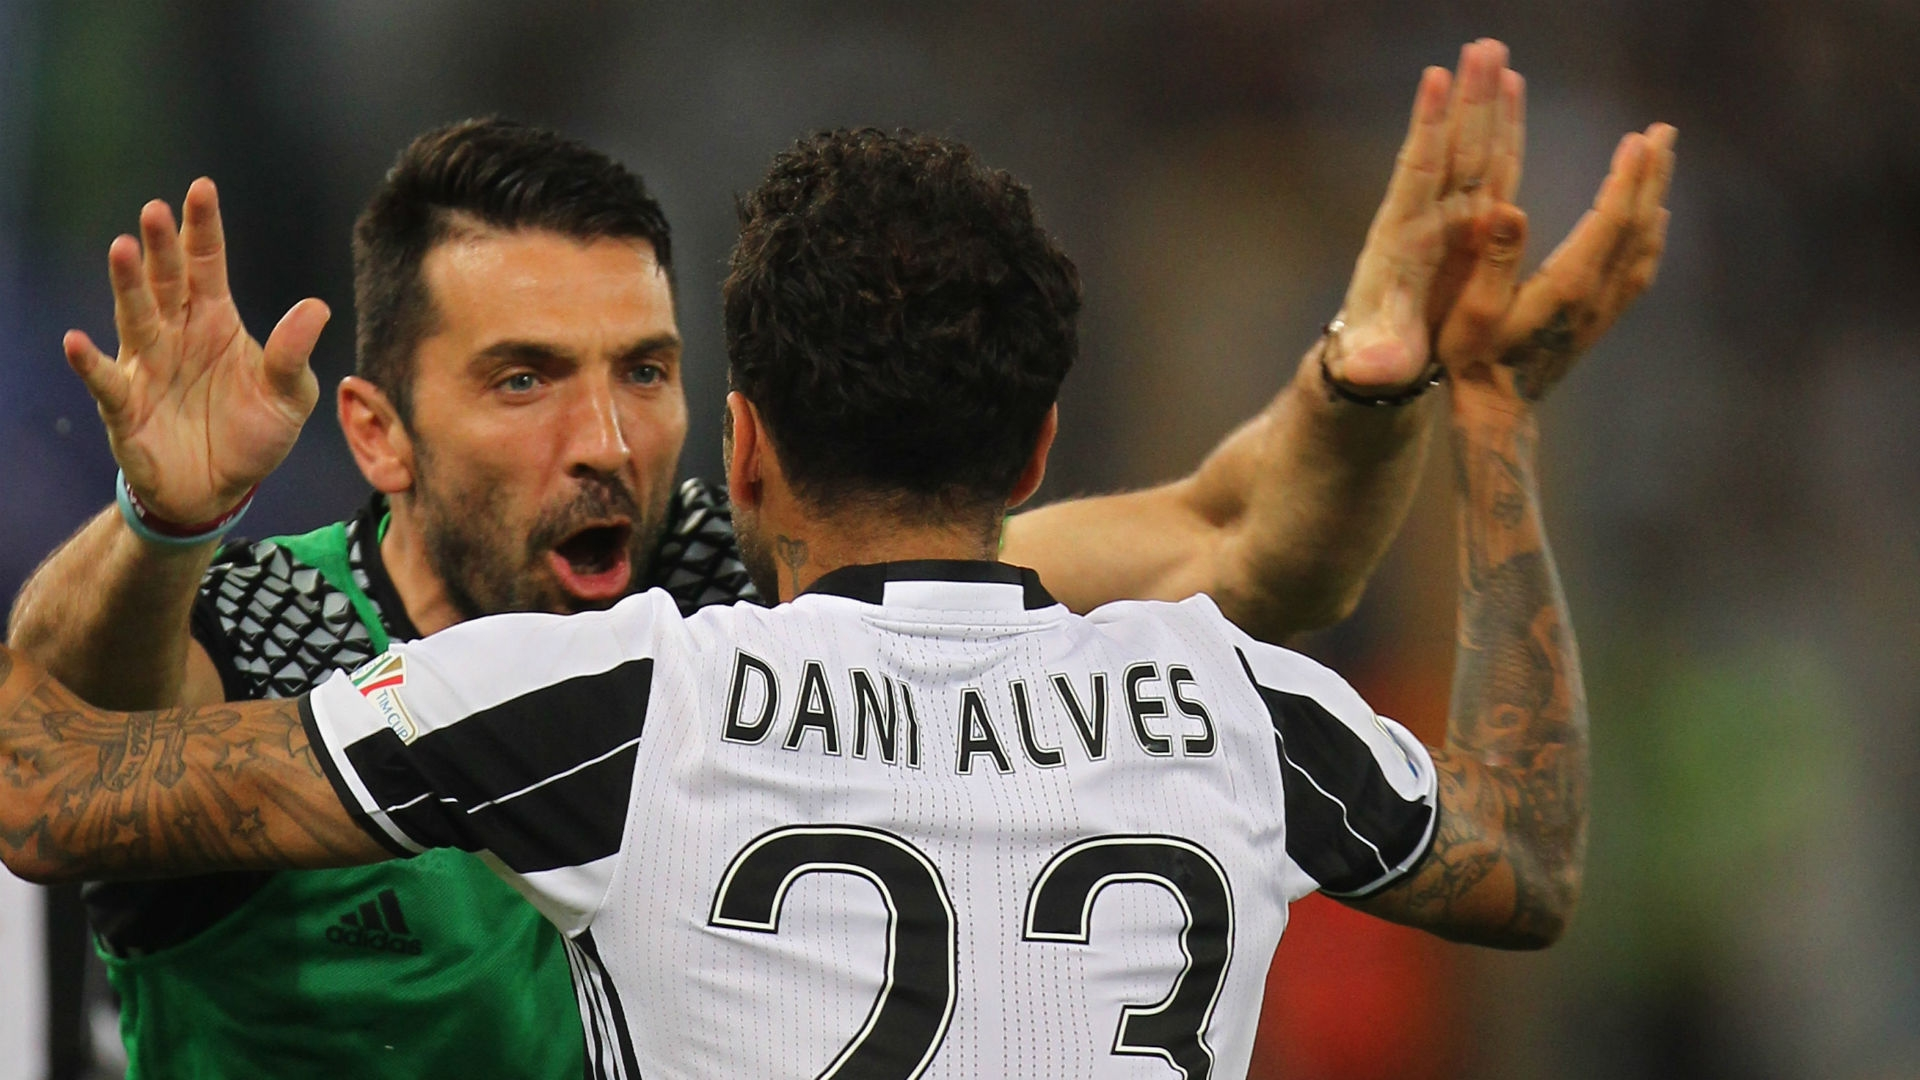 Alves was a key player for Juventus this campaign, in which the Italian side stopped just shy of a historic treble